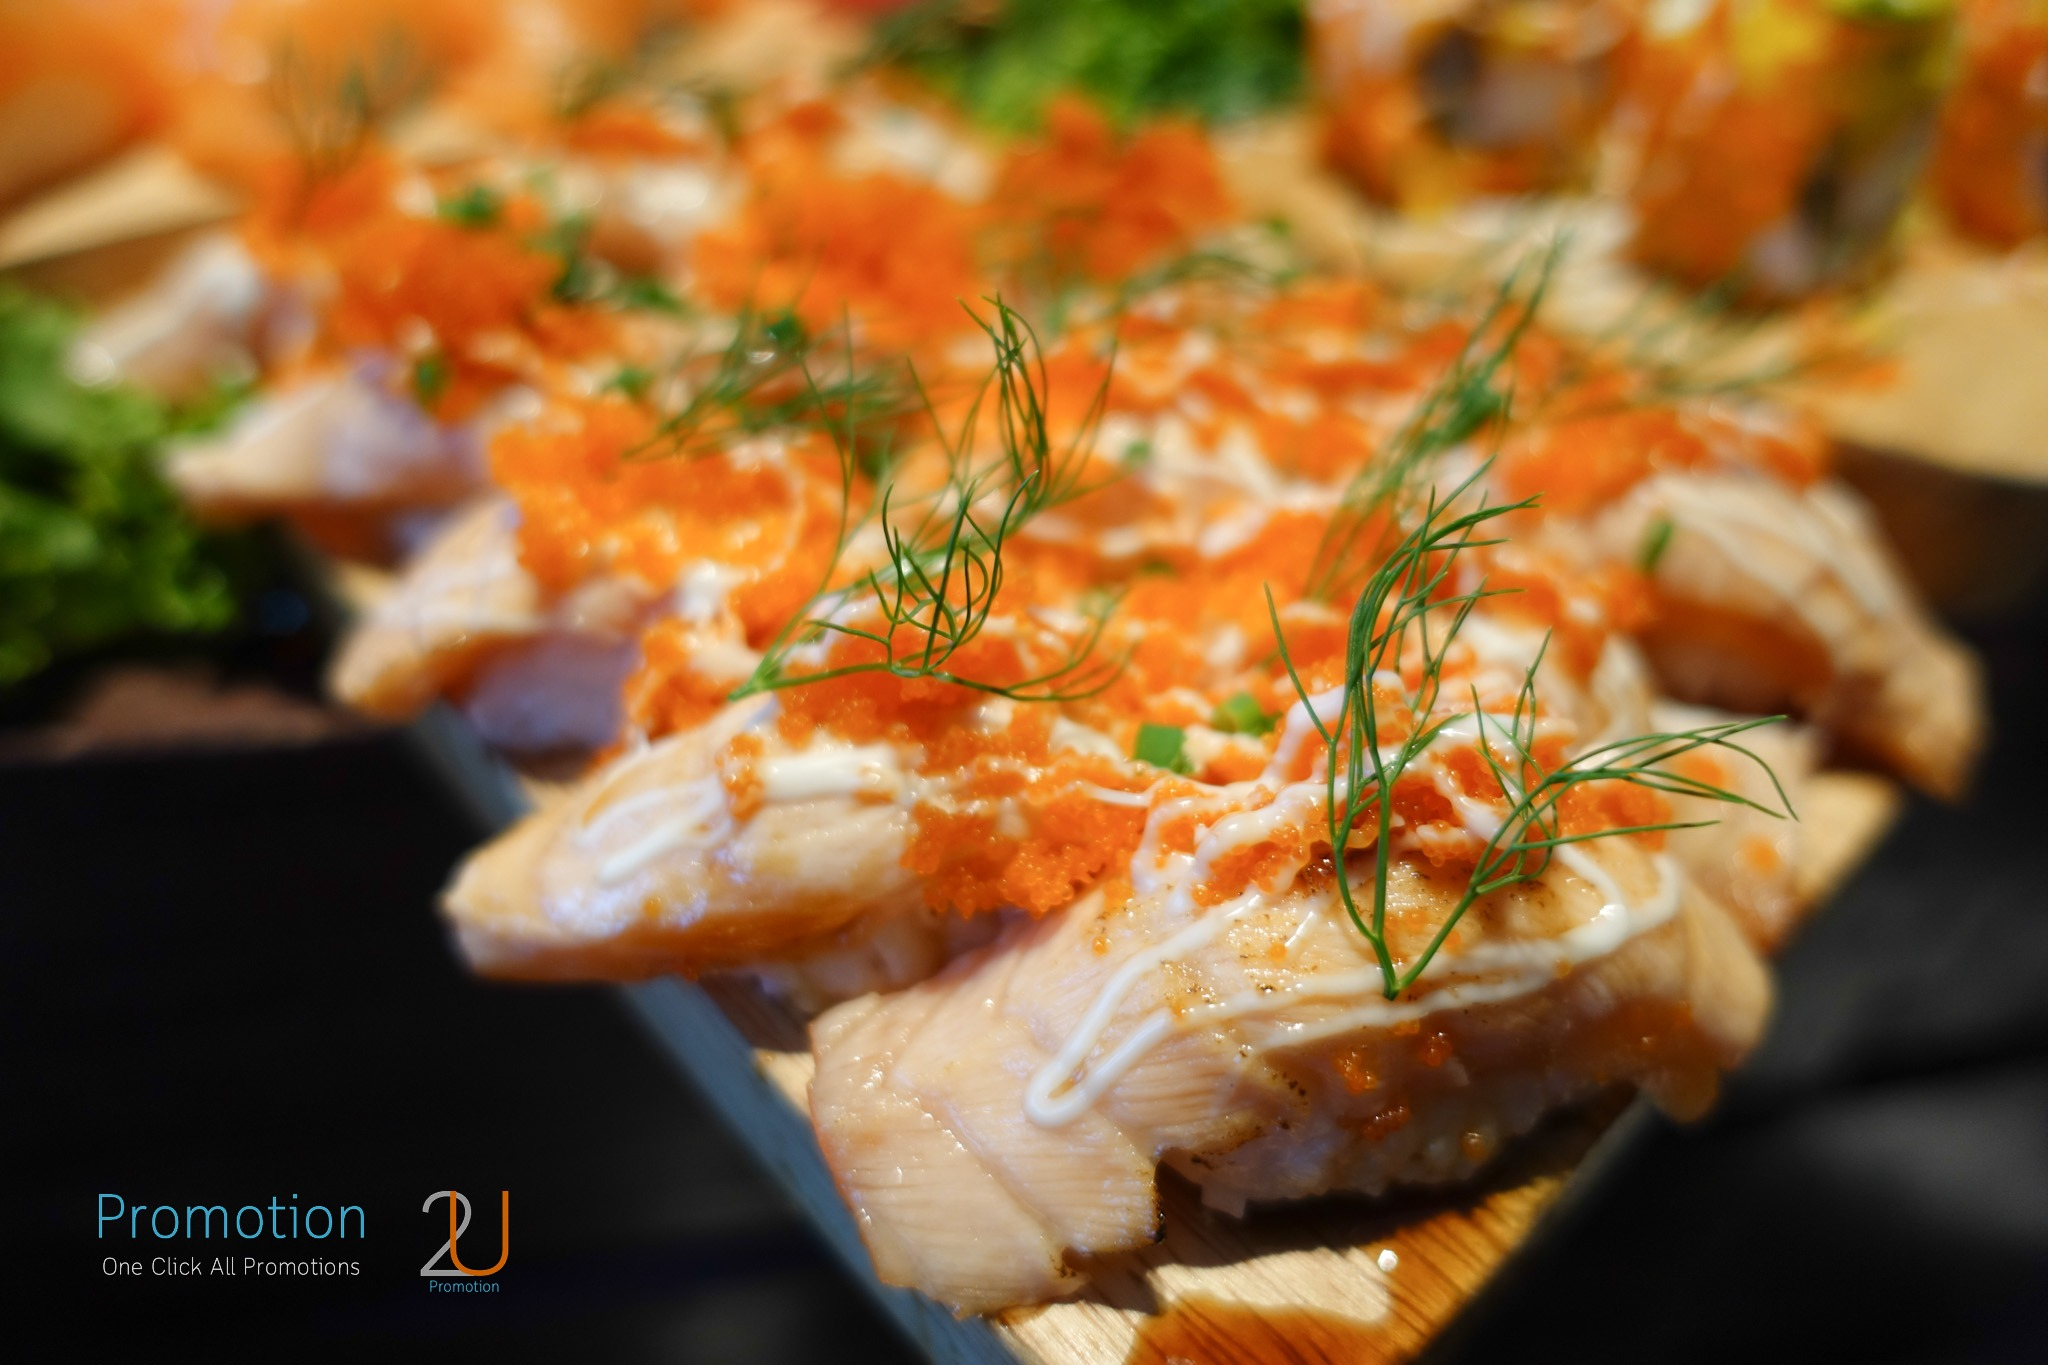 16Promotiion-Buffet-Come-2-pay-1-at-The--Squaer-Novotel-Pleonjit-Bangkok